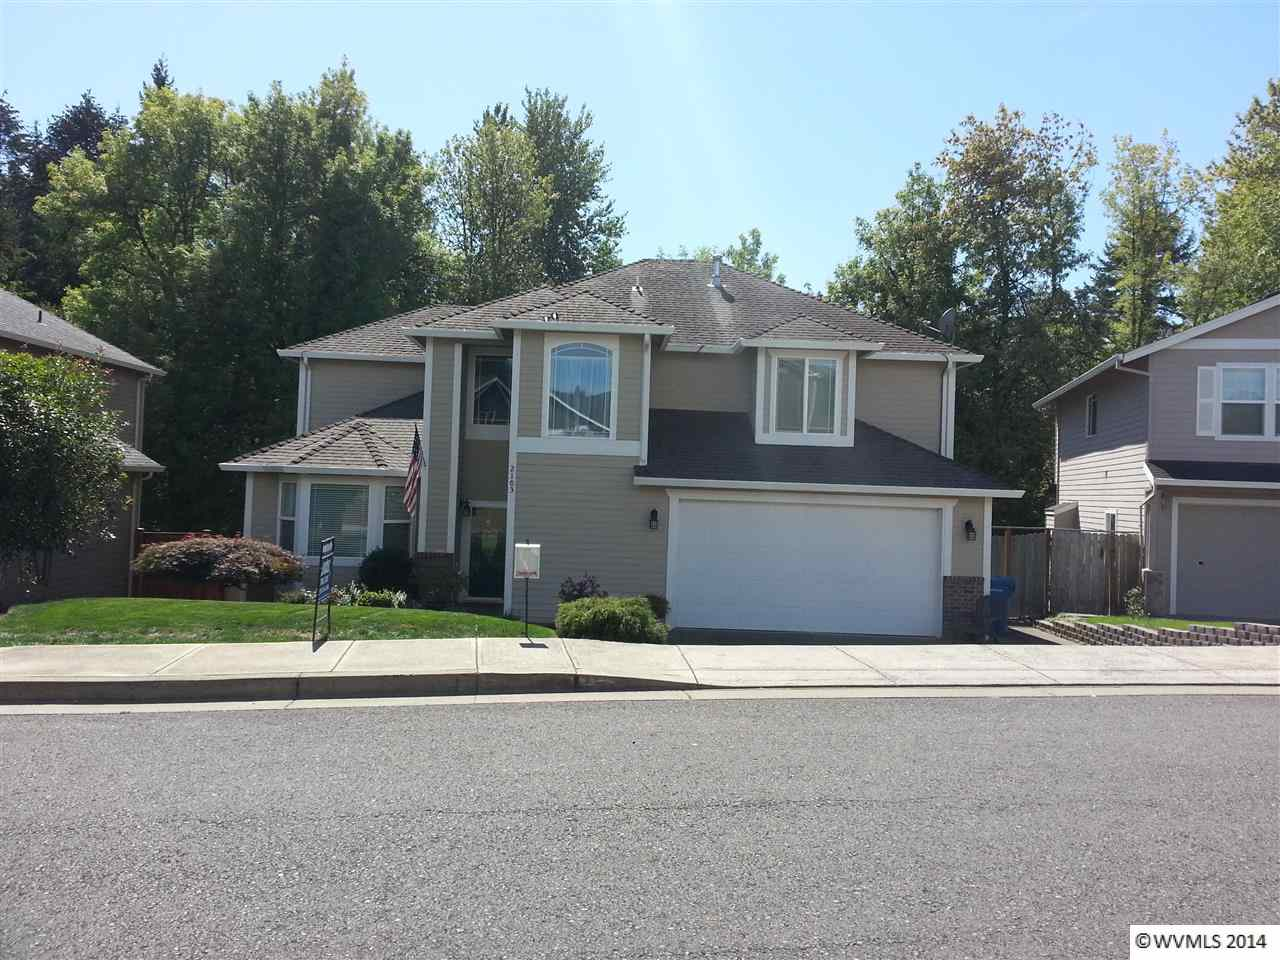 2103 Woodhill St NW, Salem, OR 97304